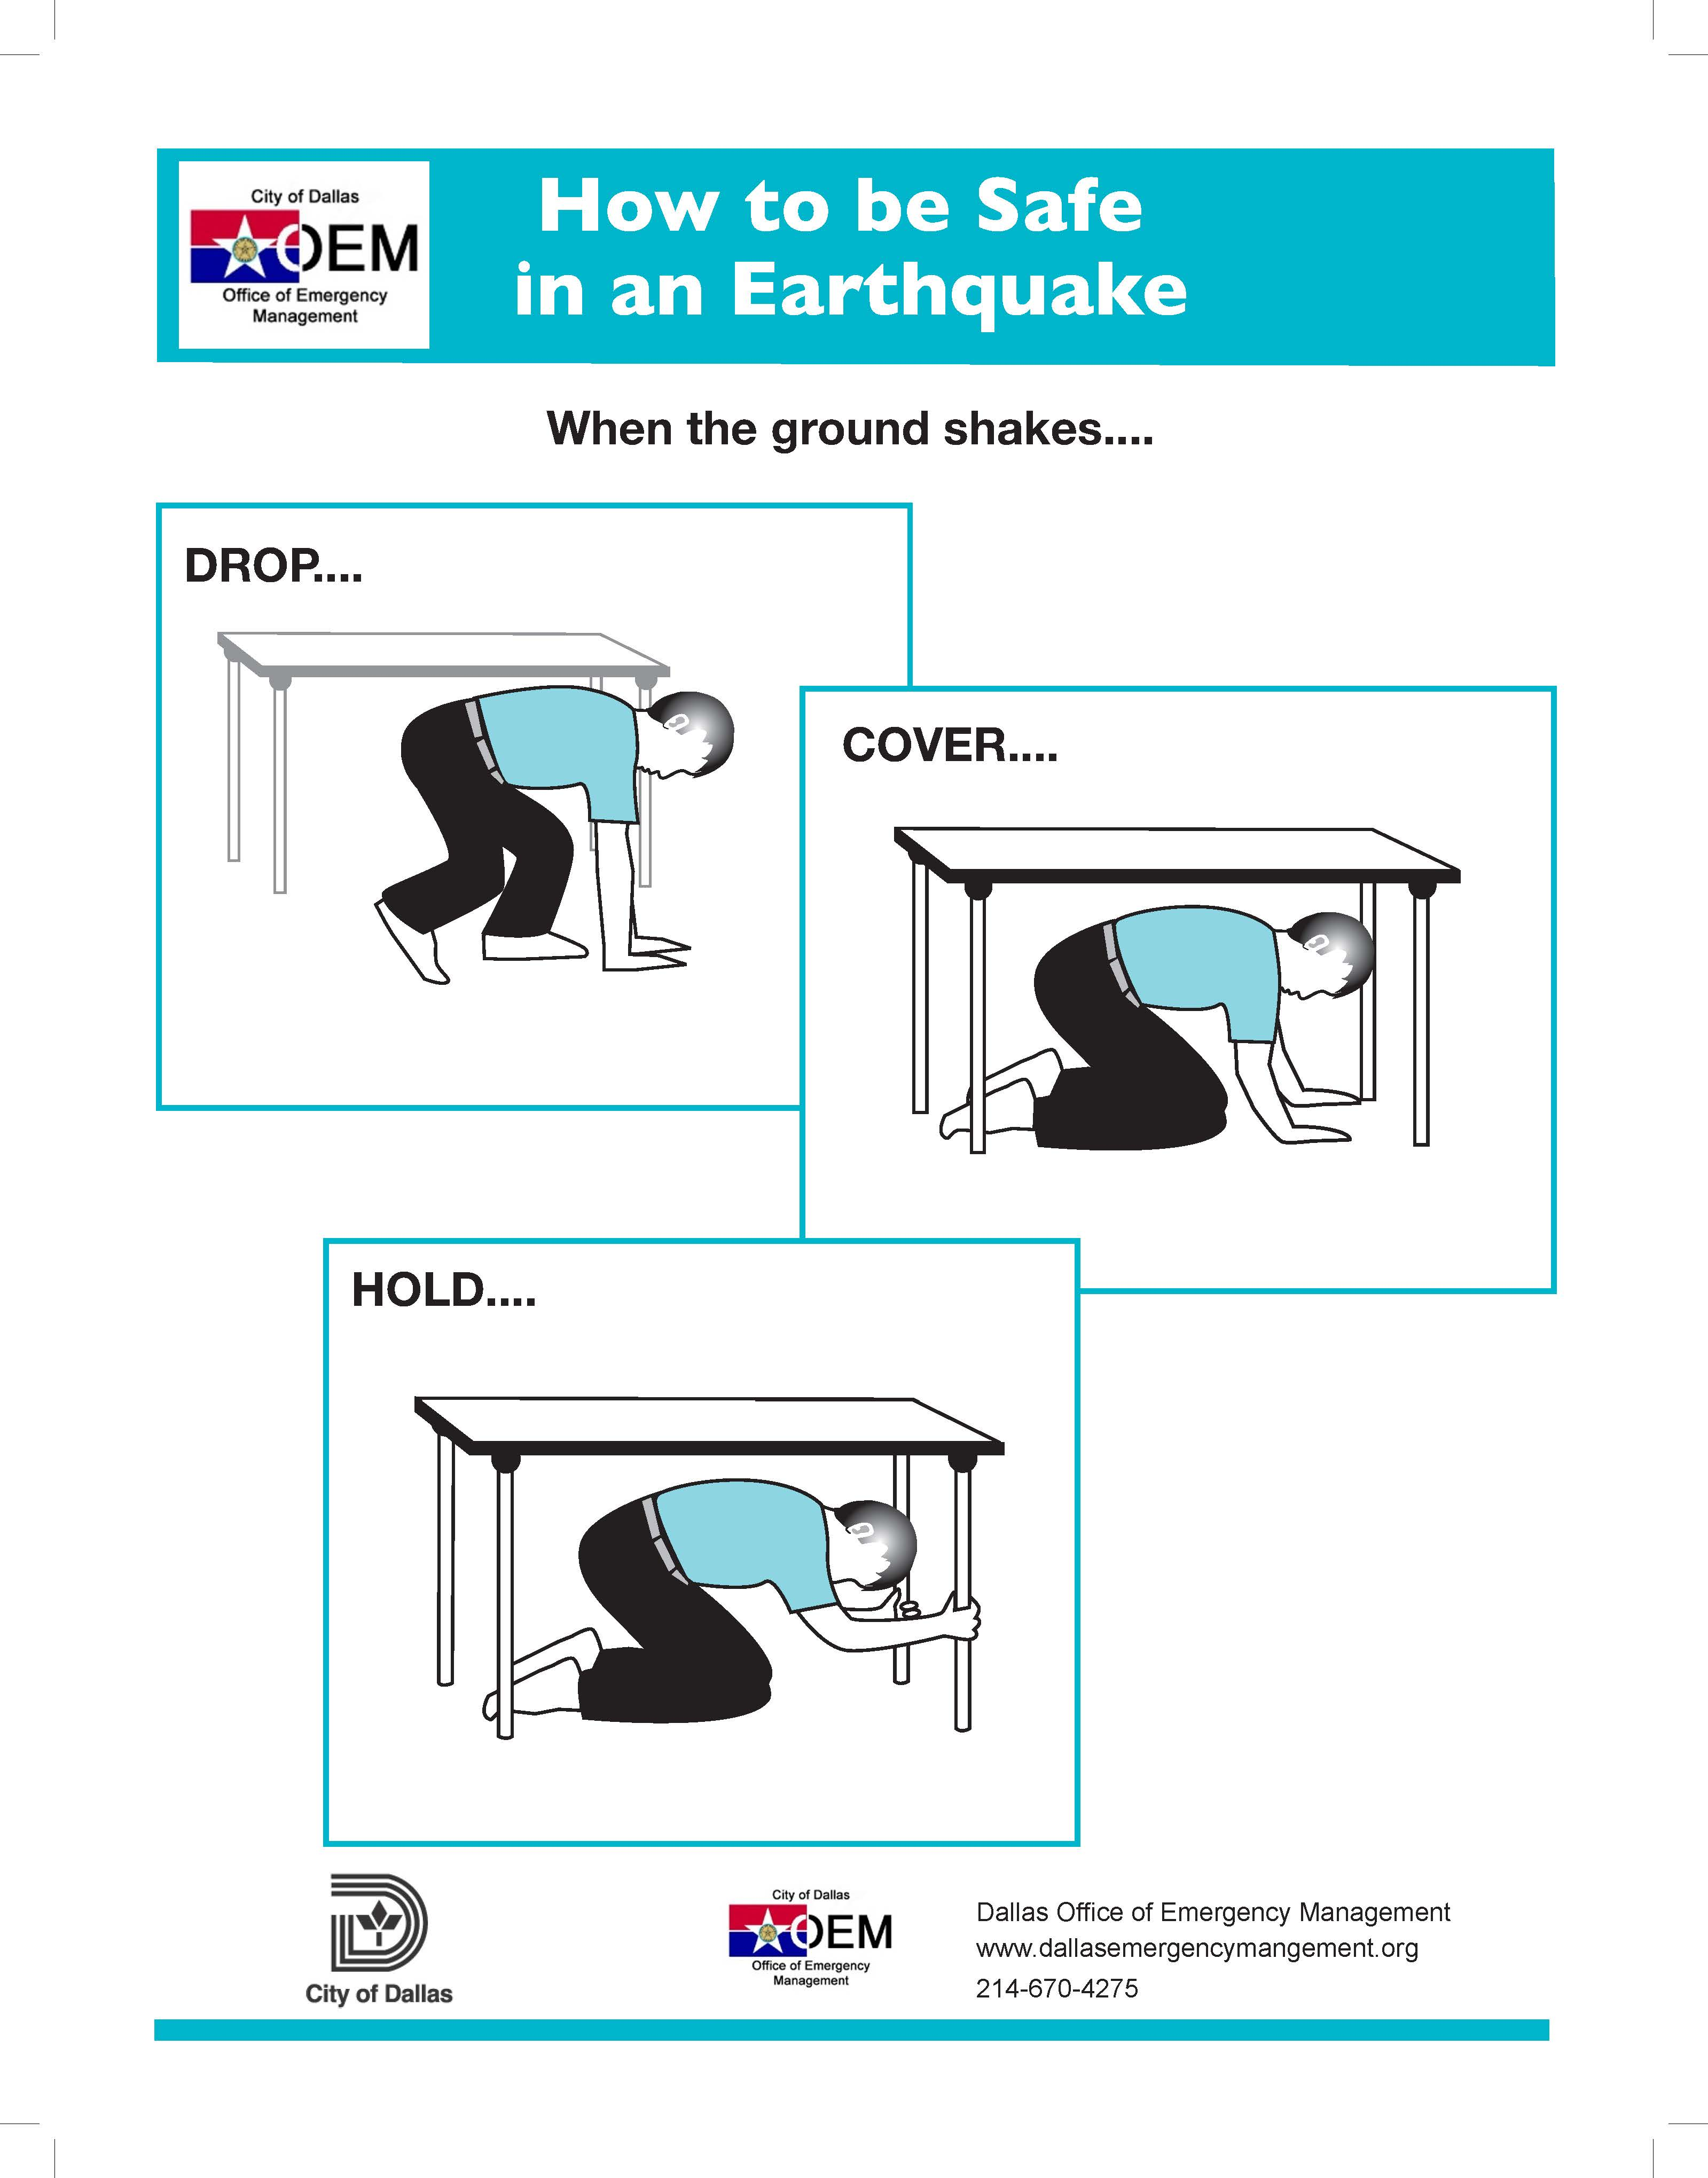 Drop Cover Hold Earthquake Safety infographic pg 1